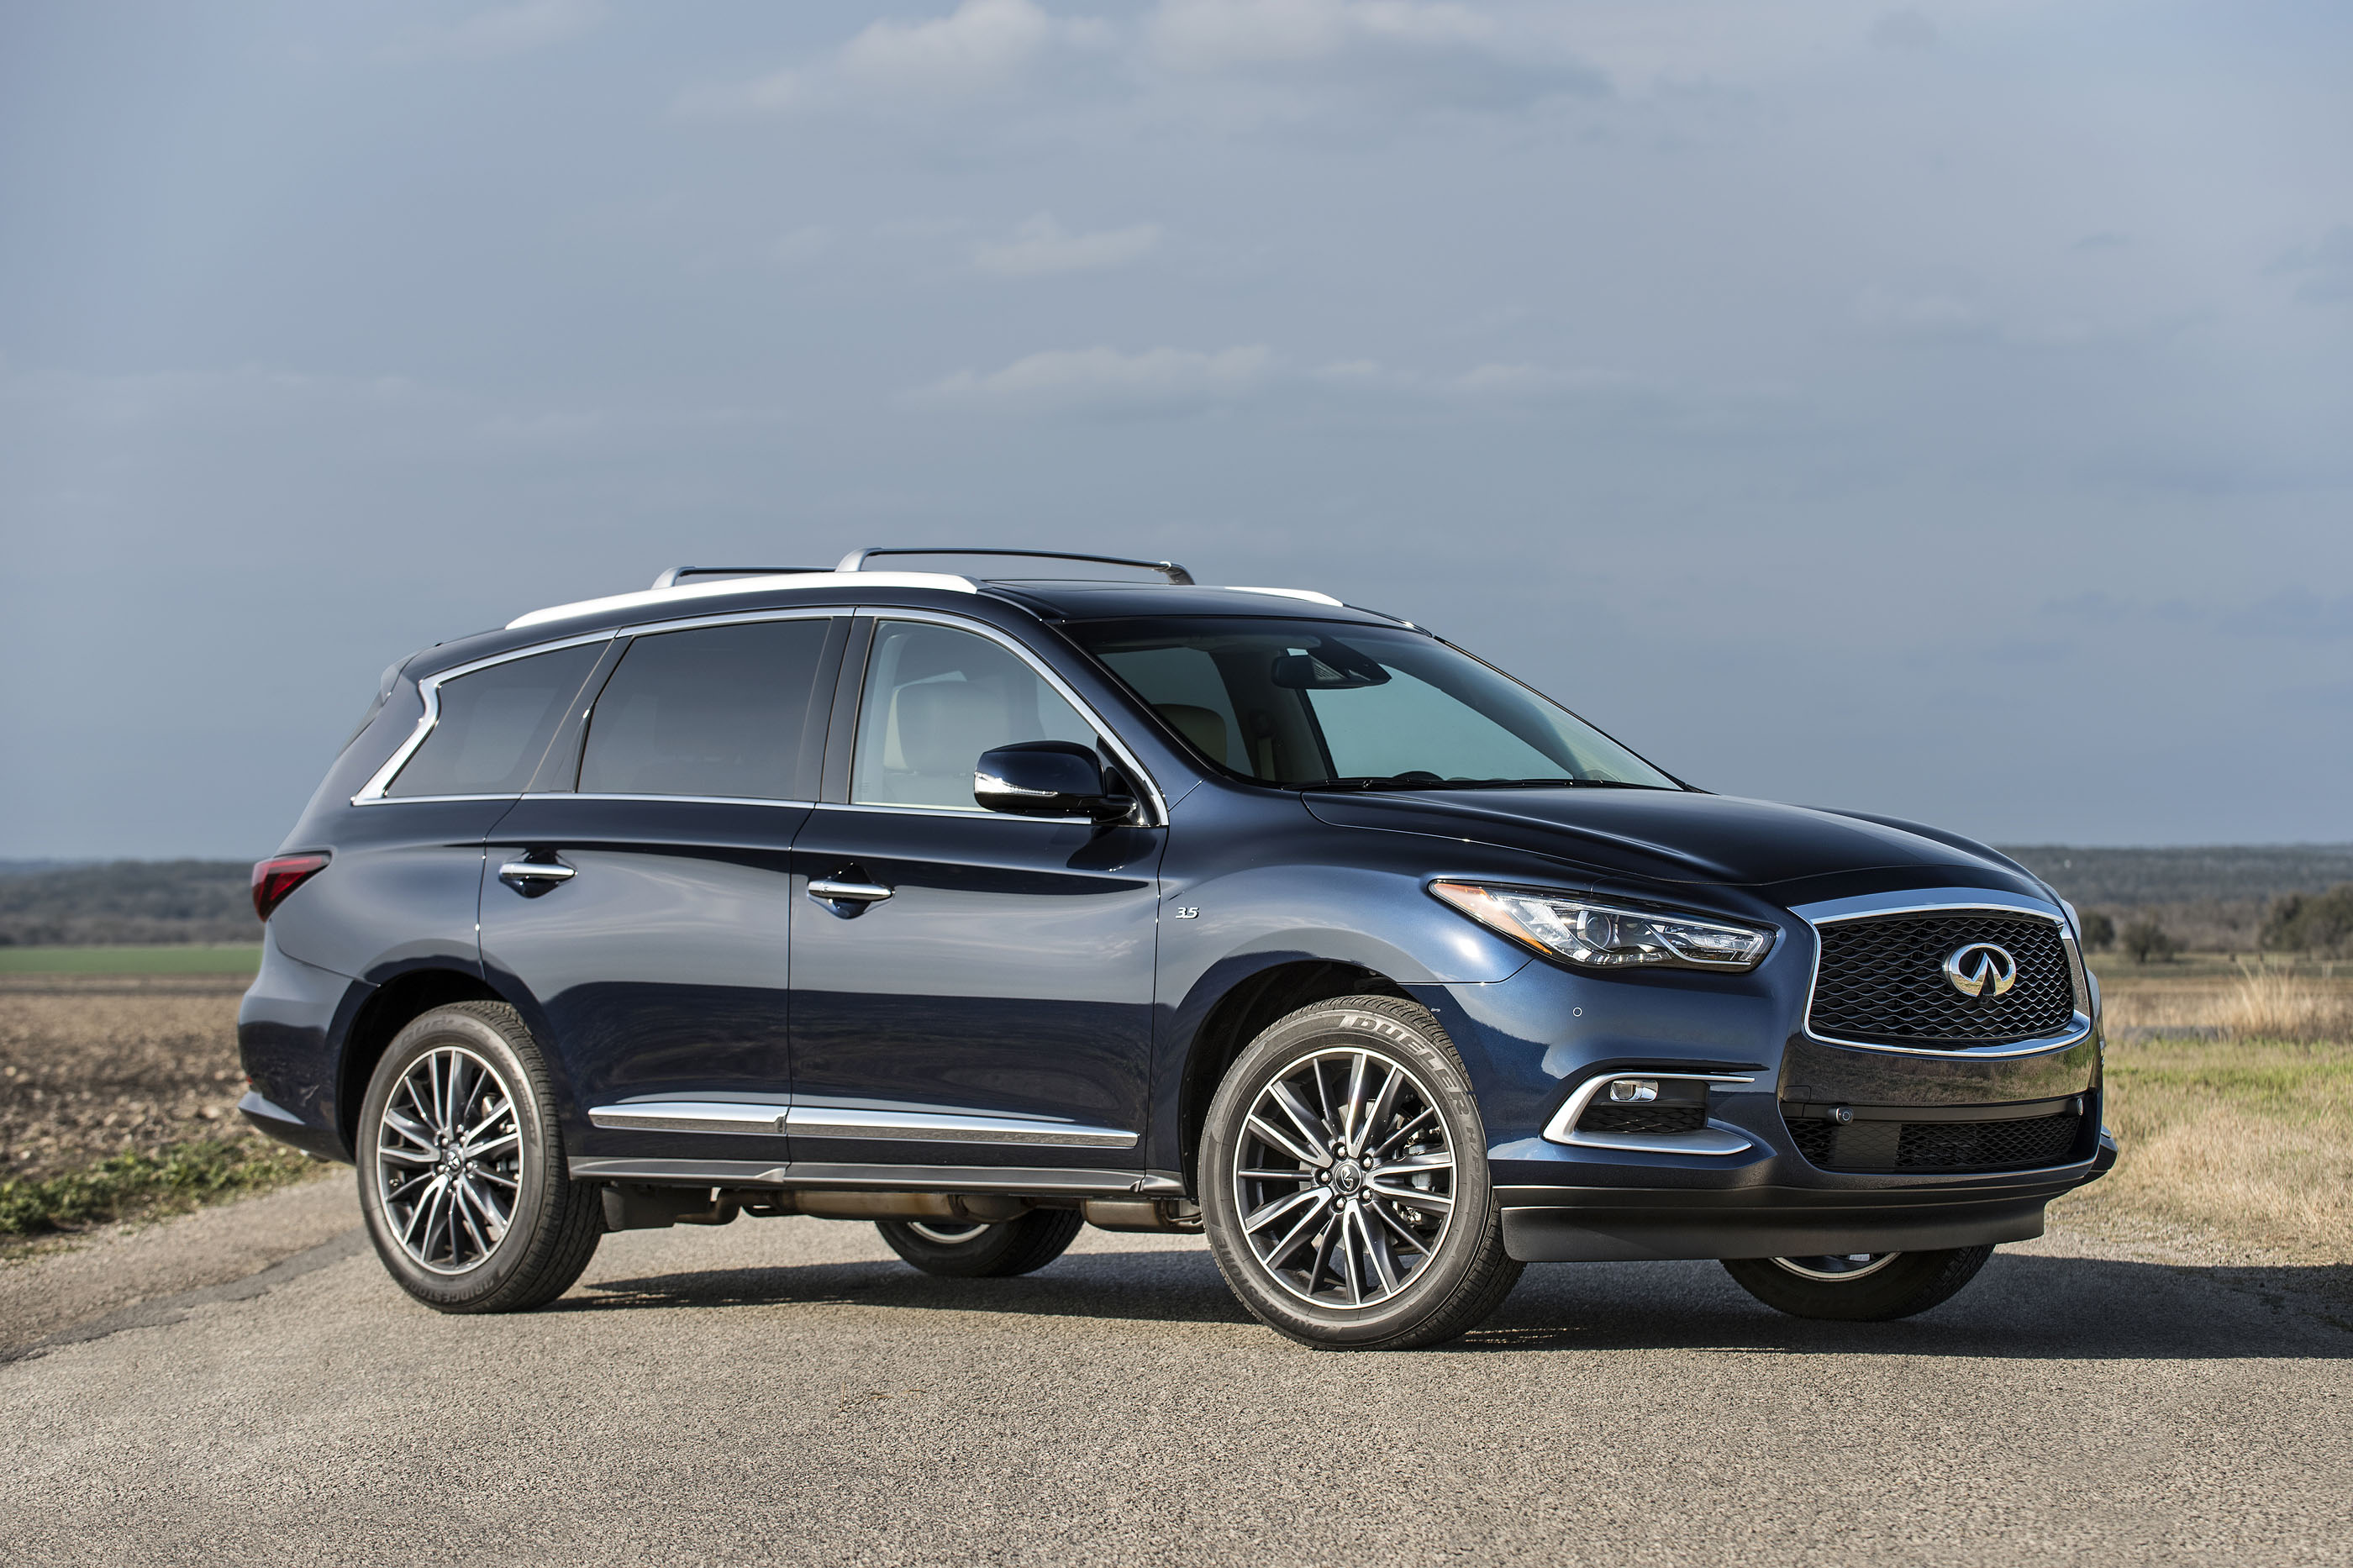 2017 infiniti qx60 review ratings specs prices and photos the car connection. Black Bedroom Furniture Sets. Home Design Ideas